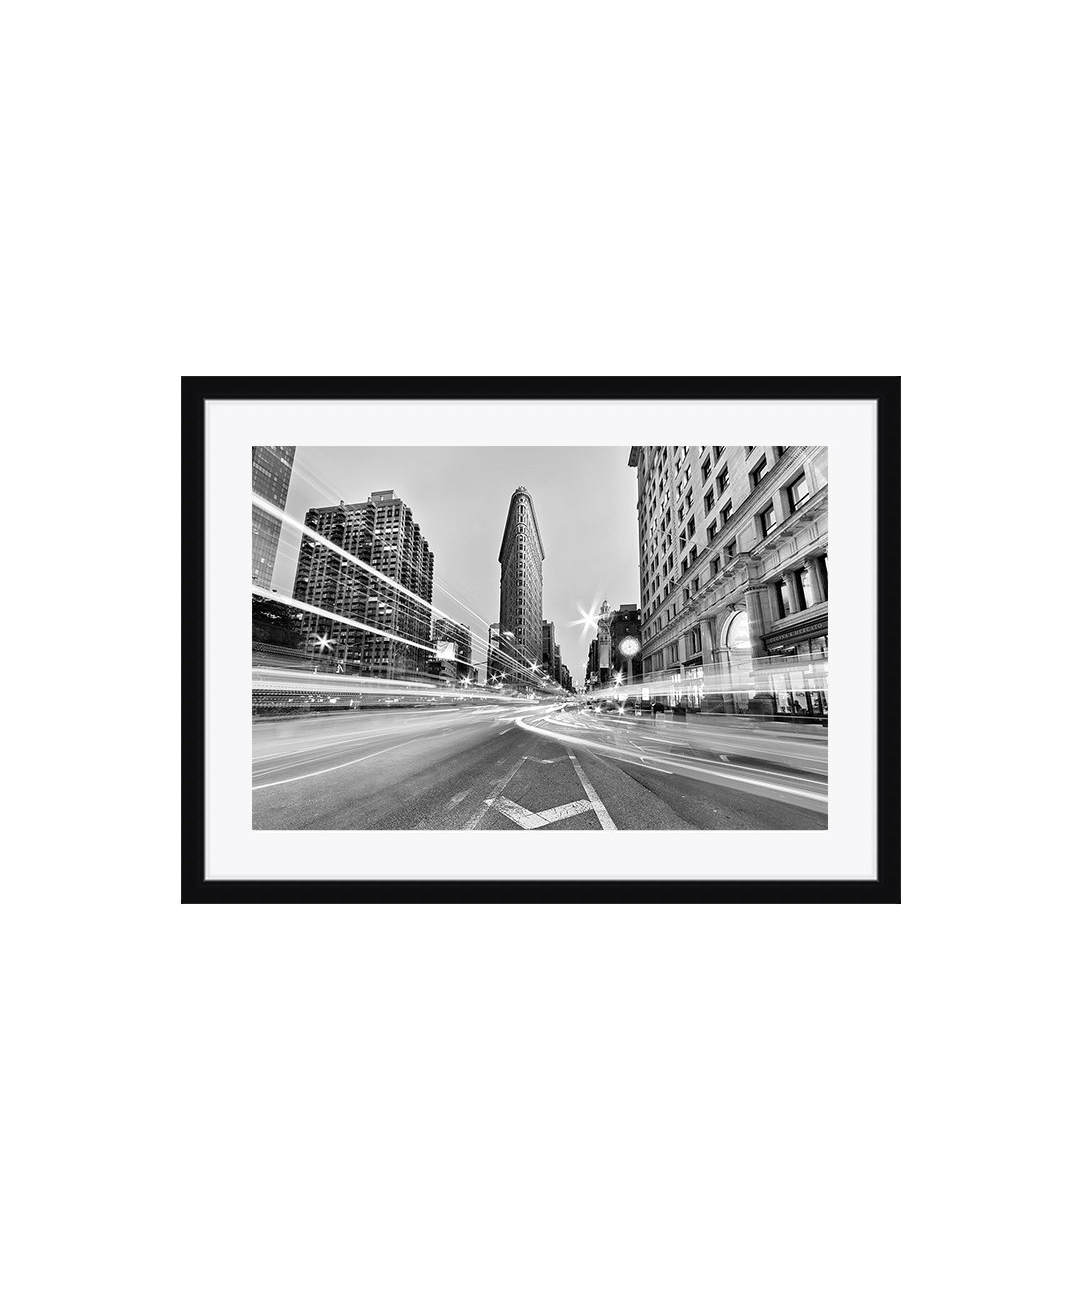 Framed New York City Photography Print